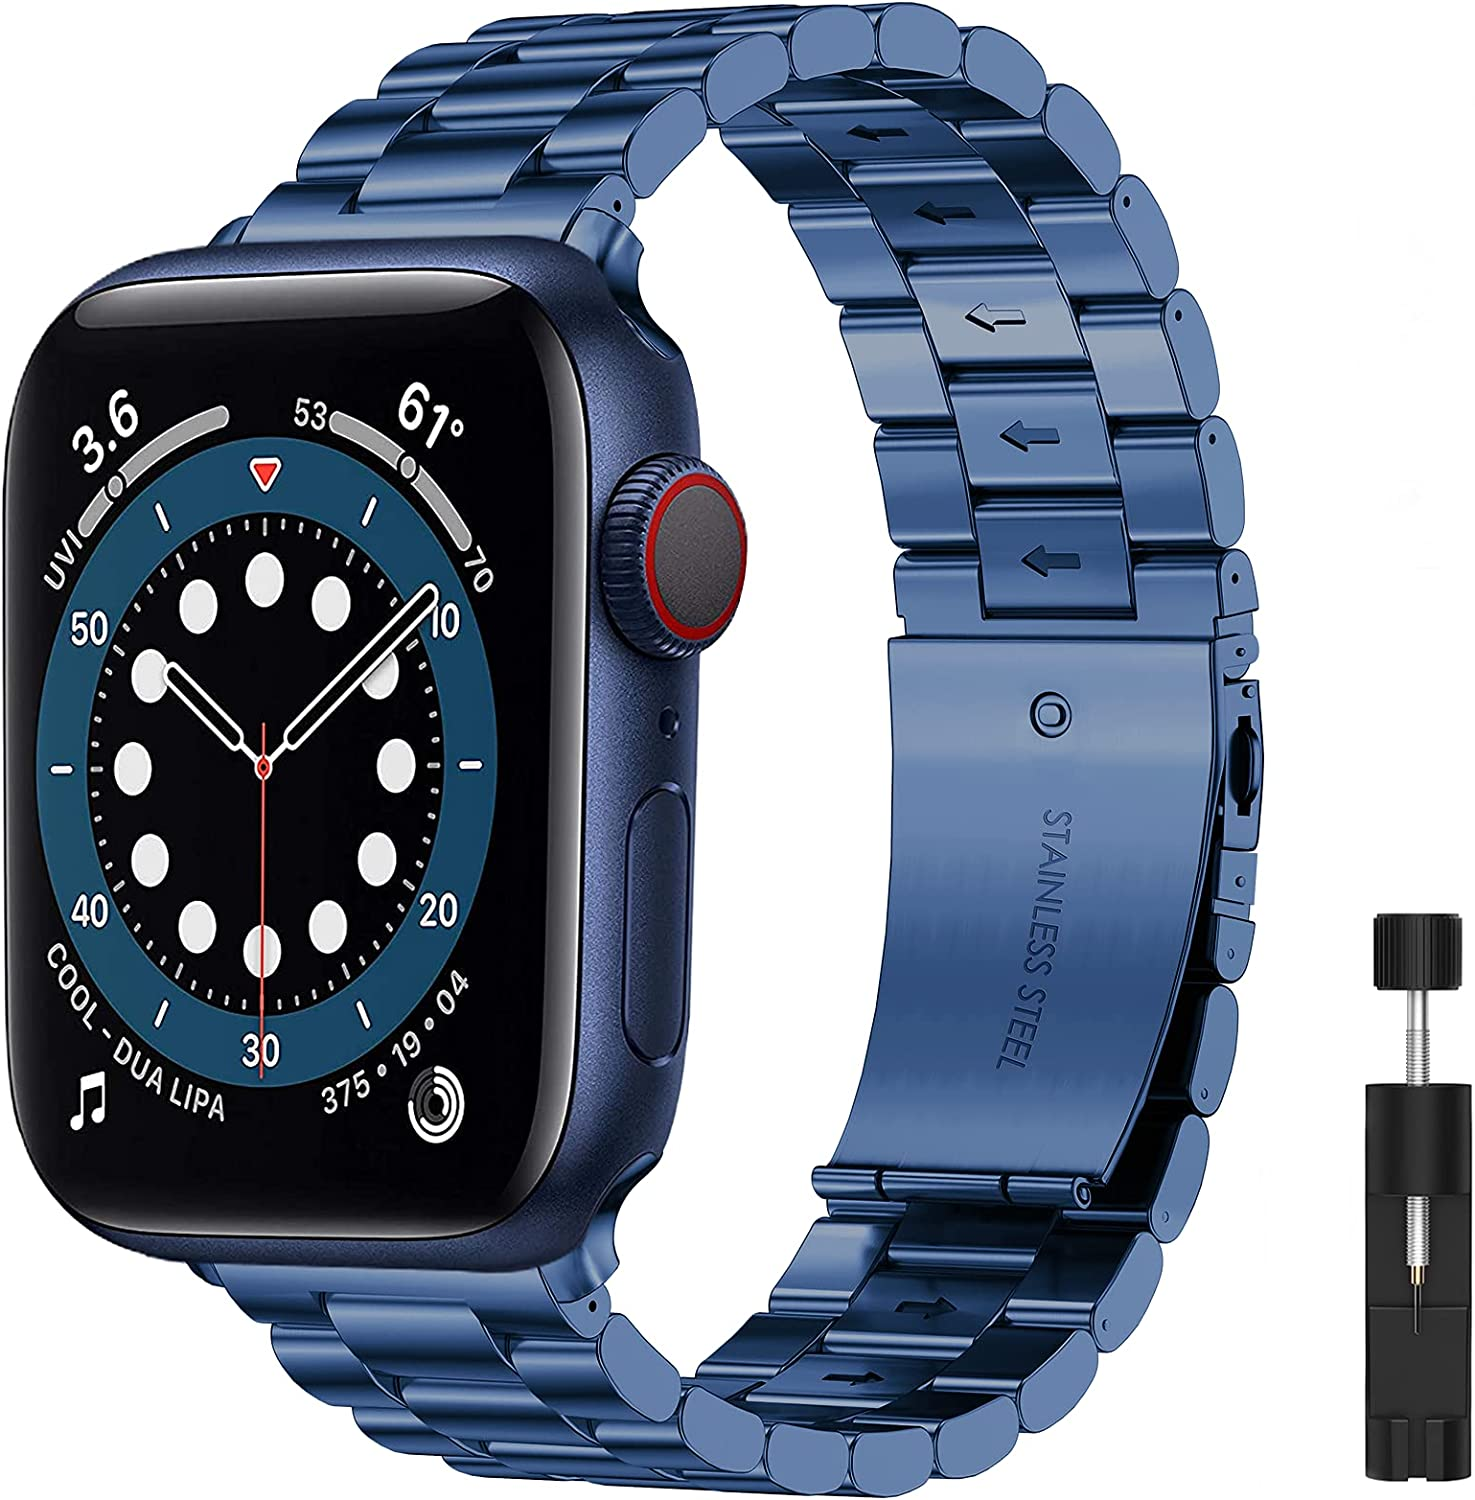 Liwin Metal Band Compatible with Apple Watch Series SE/6/5/4/3/2/1, Series 6 Band for Men Women, Replacement Stainless Steel Business Bracelet Wrist Strap Accessory for iWatch Band (42mm/44mm, Blue)